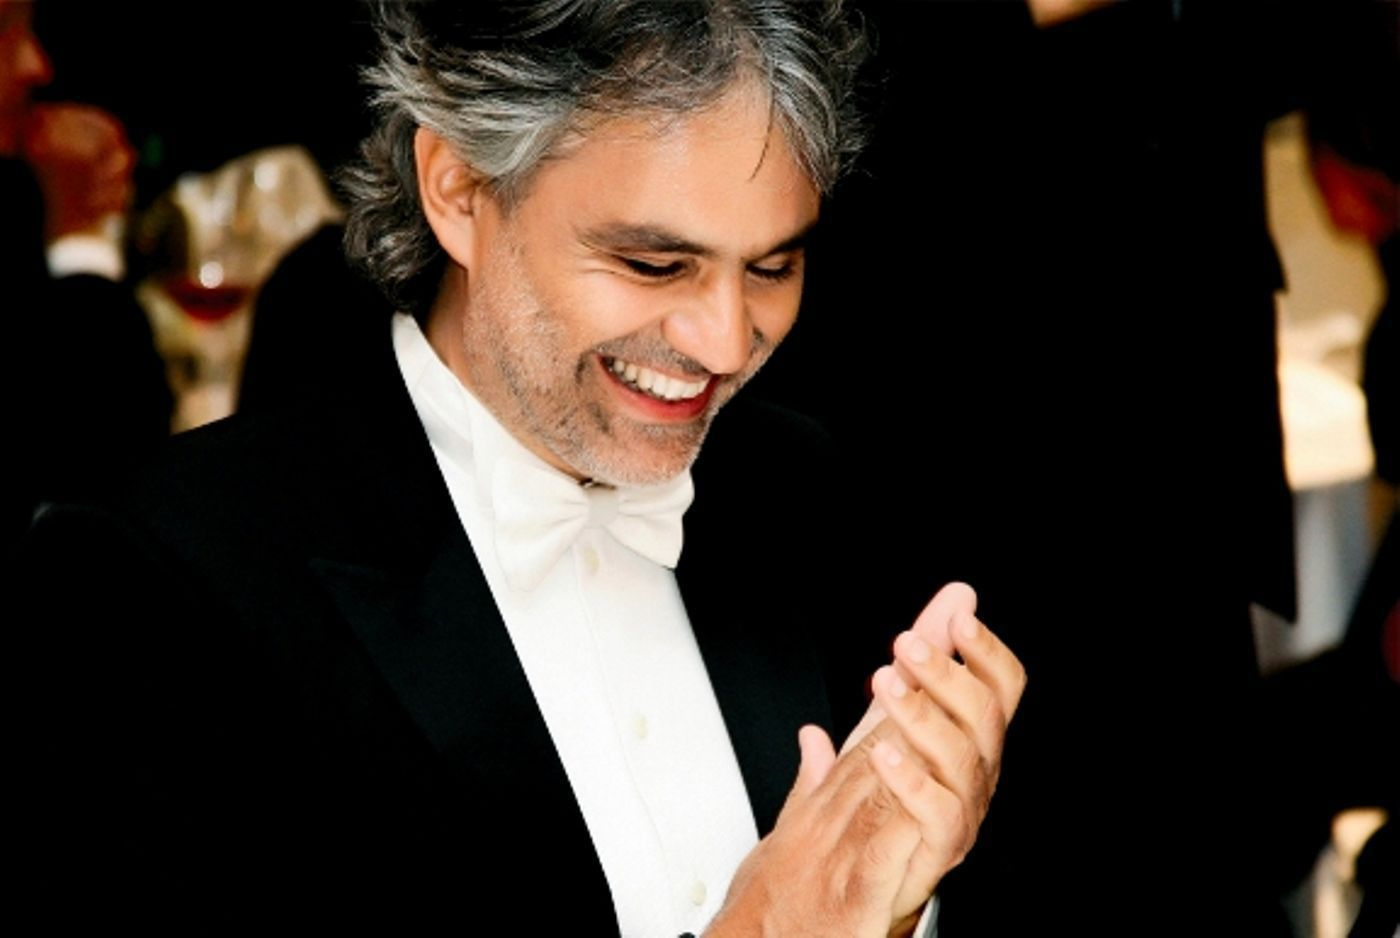 Andrea Bocelli by Souran5 CC BY 2.0